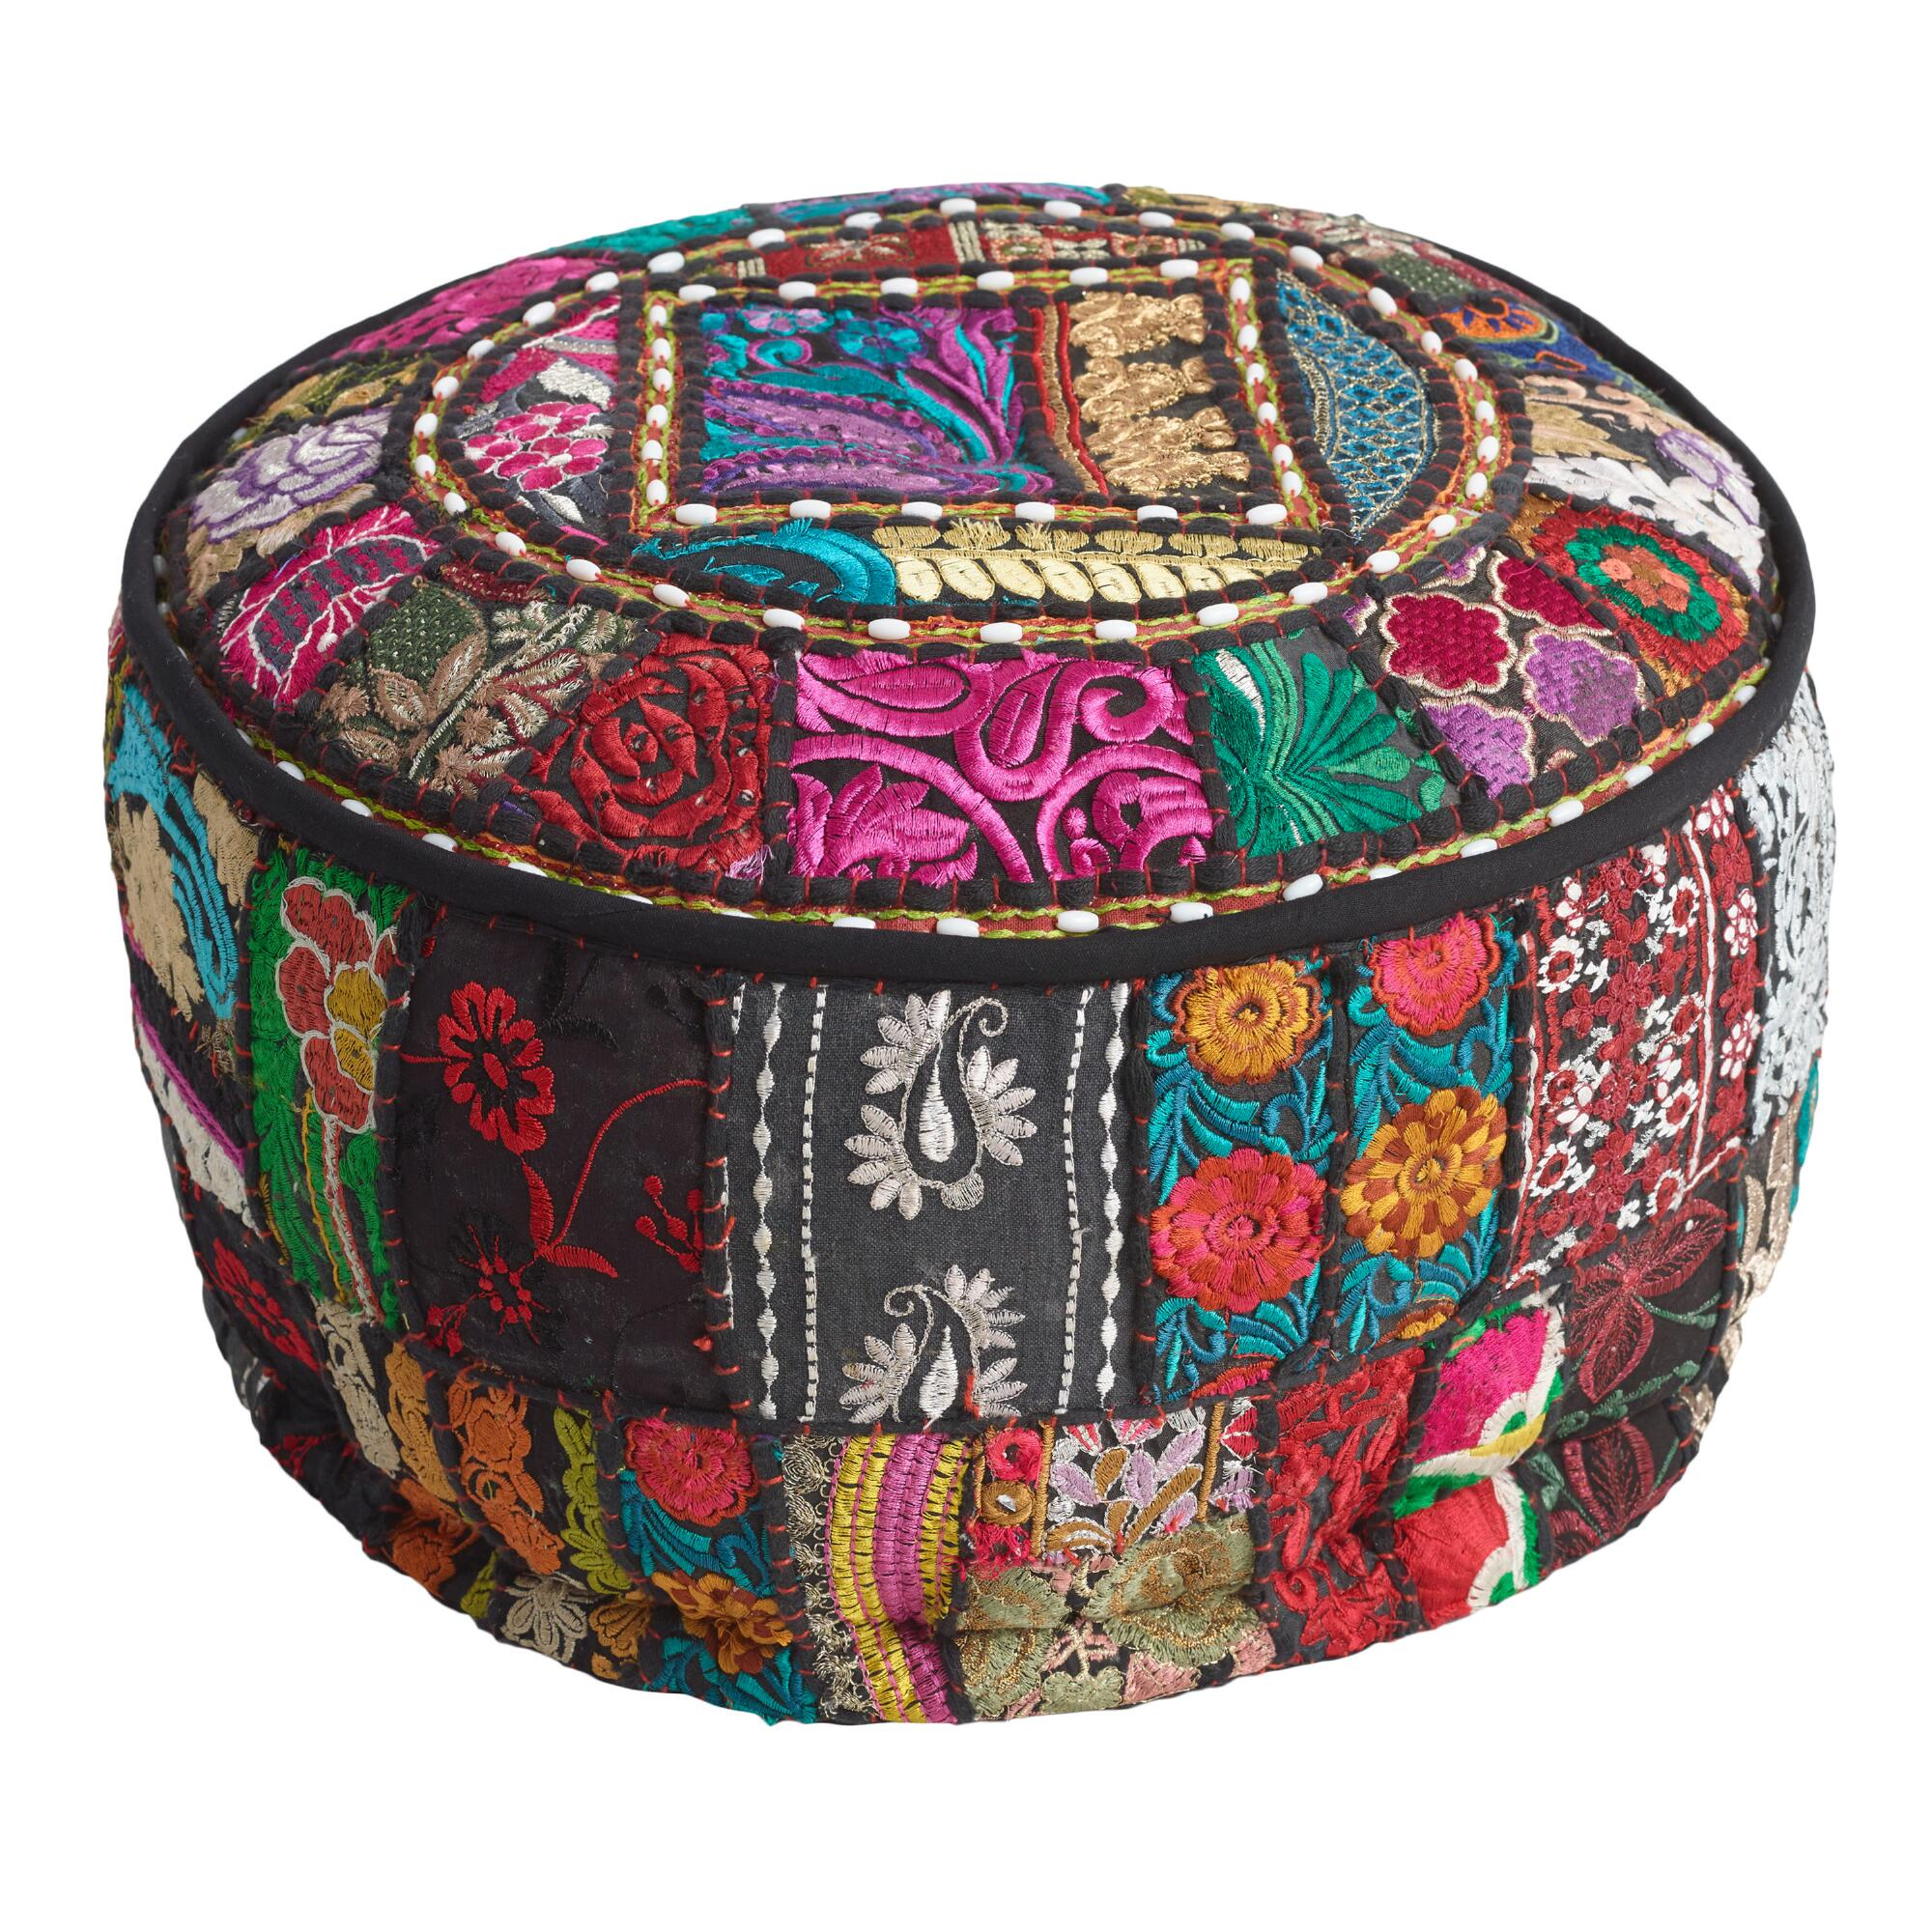 Floor Pillows, Floor Cushions & Poufs | World Market